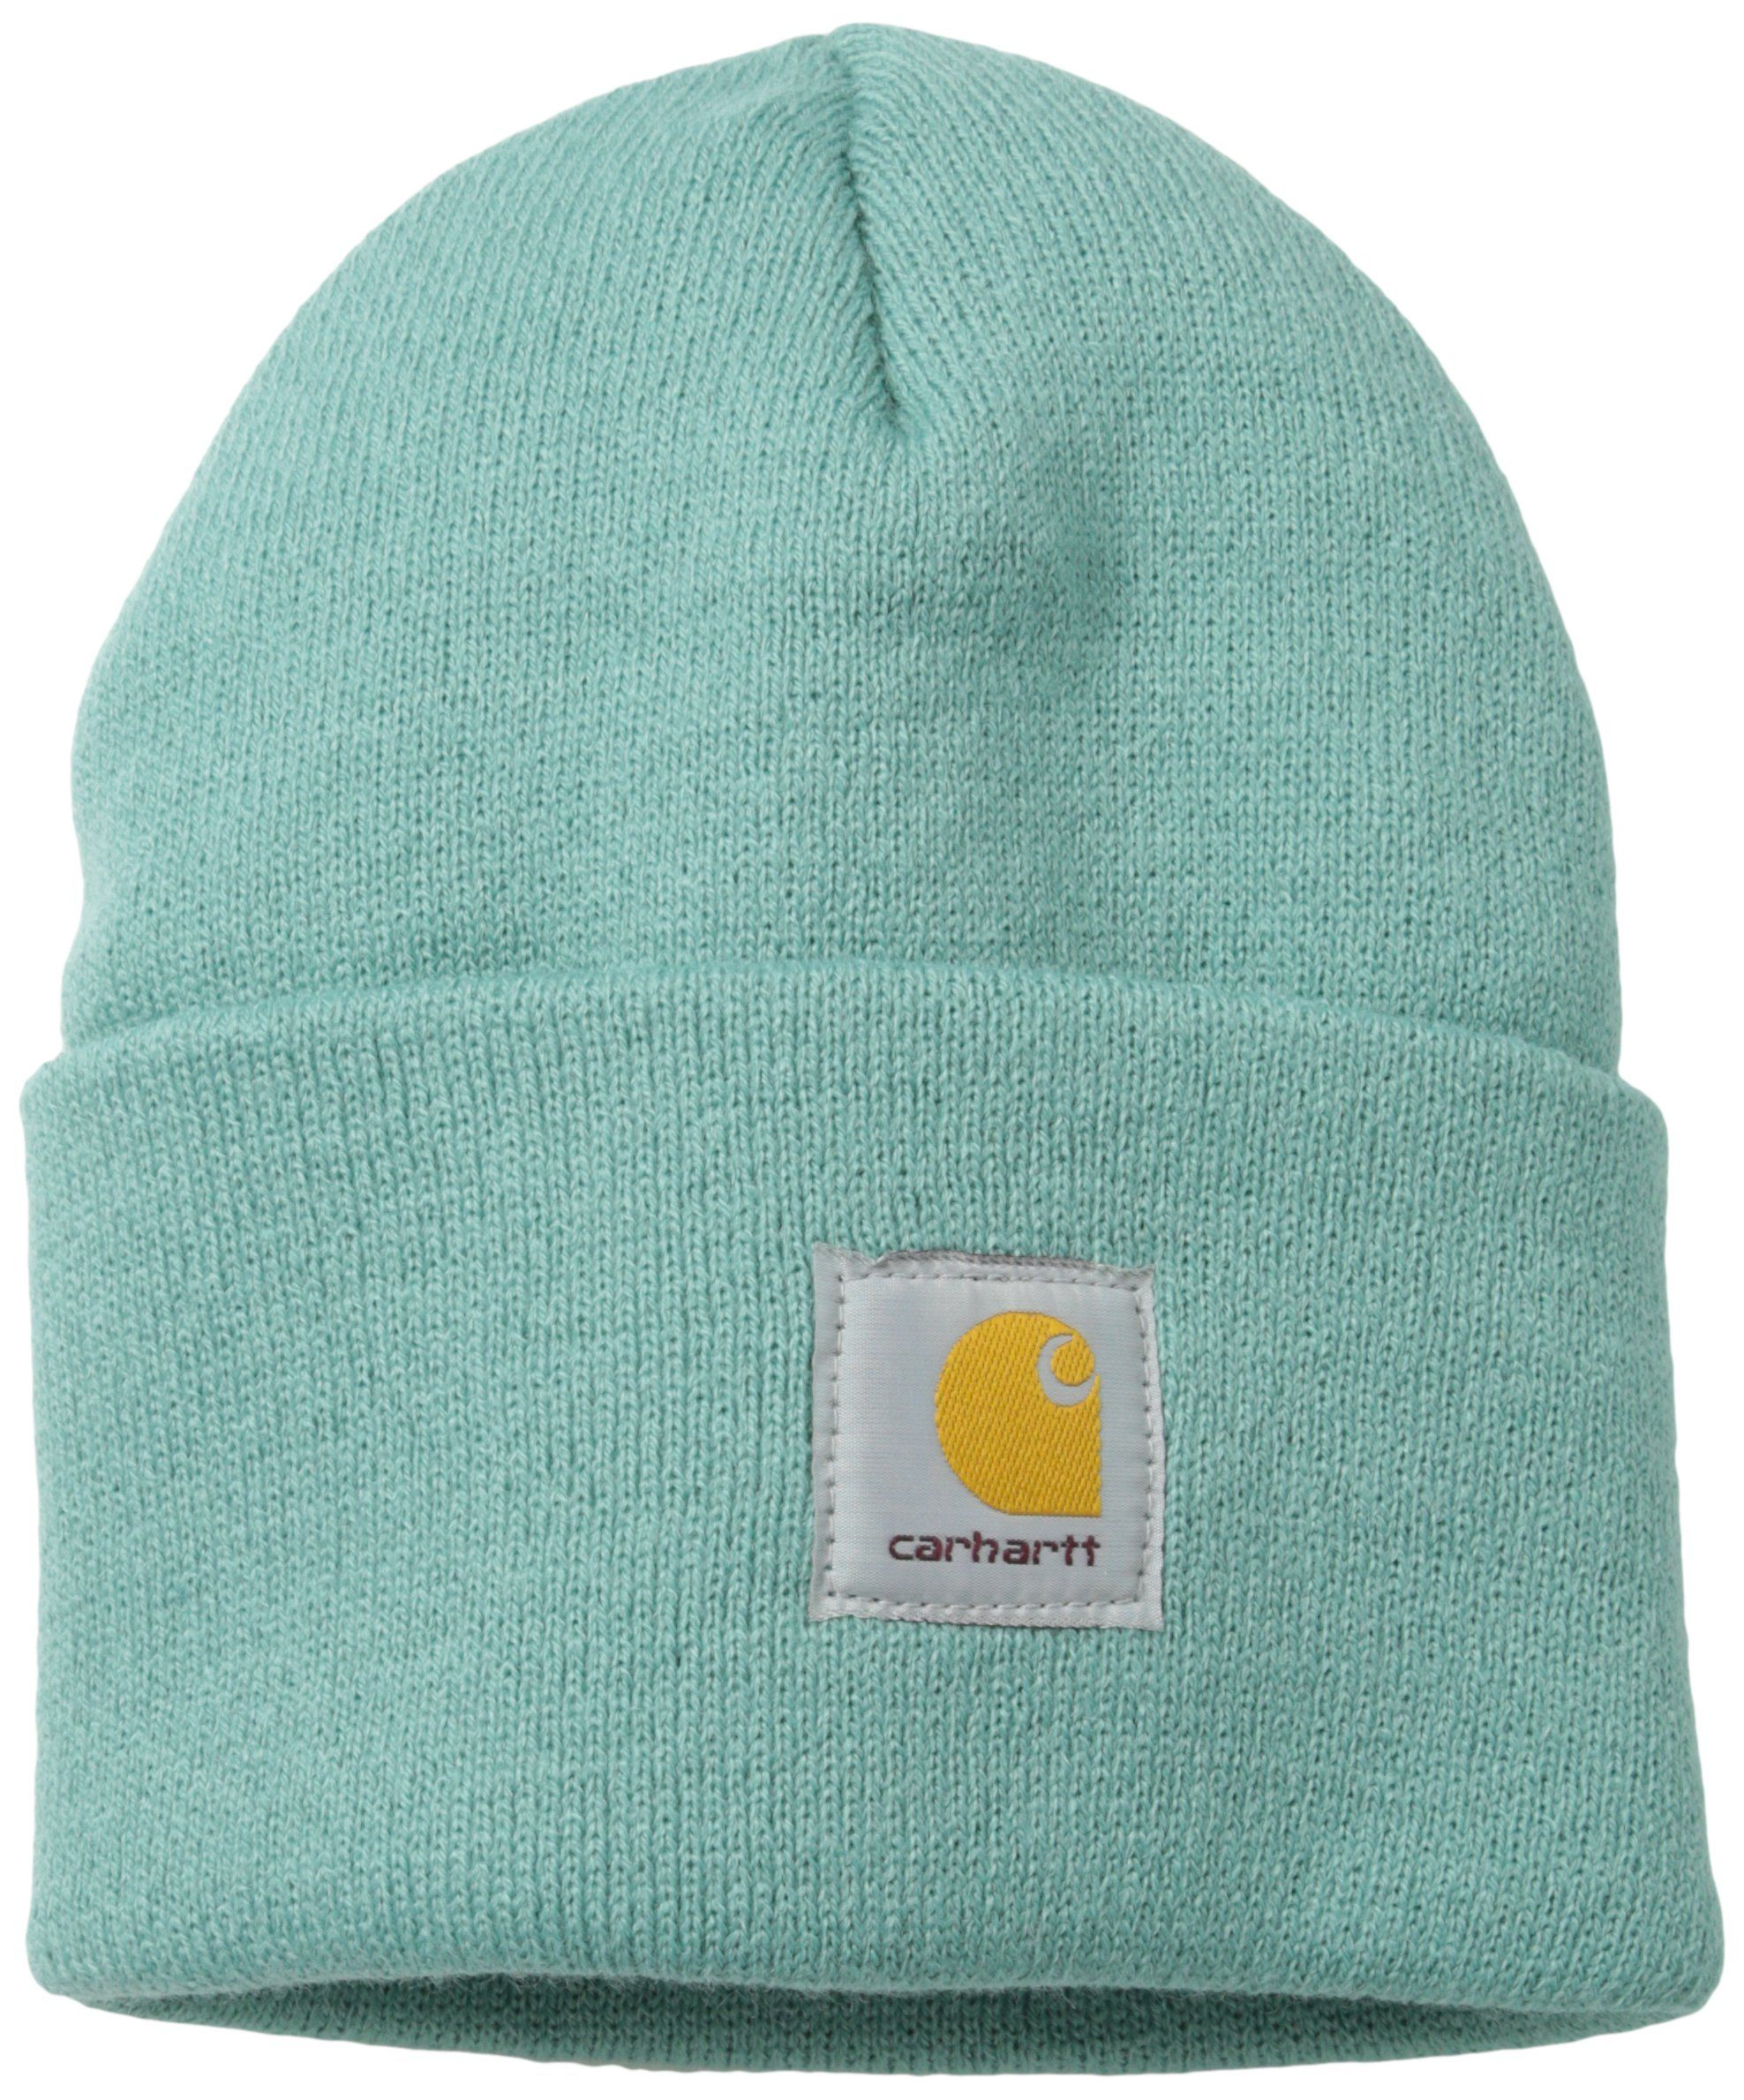 26feefd604d Amazon.com  Carhartt Women s Knit Beanie Hat